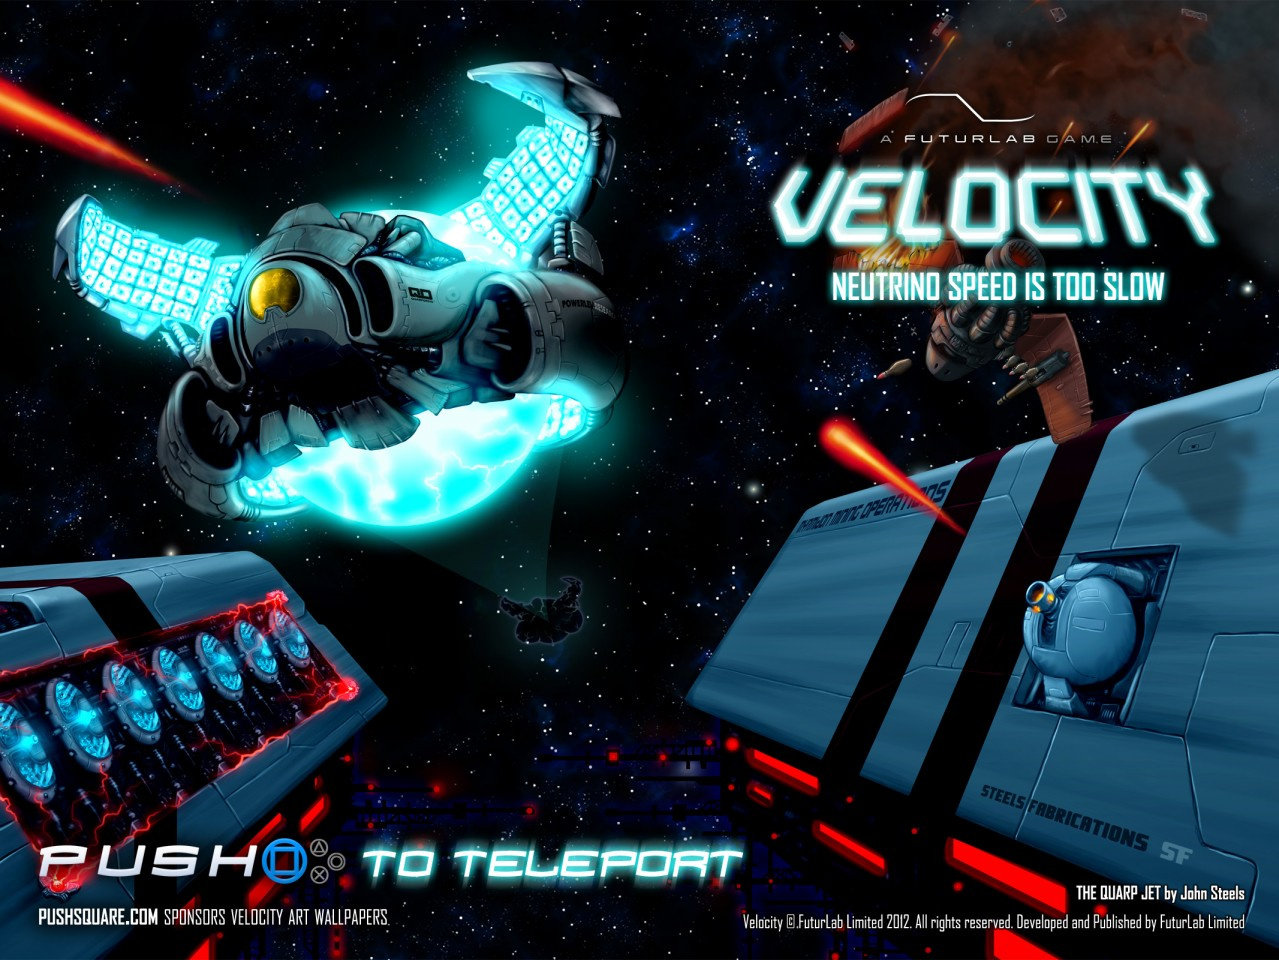 Jazz Up Your Desktop With Our Exclusive Velocity